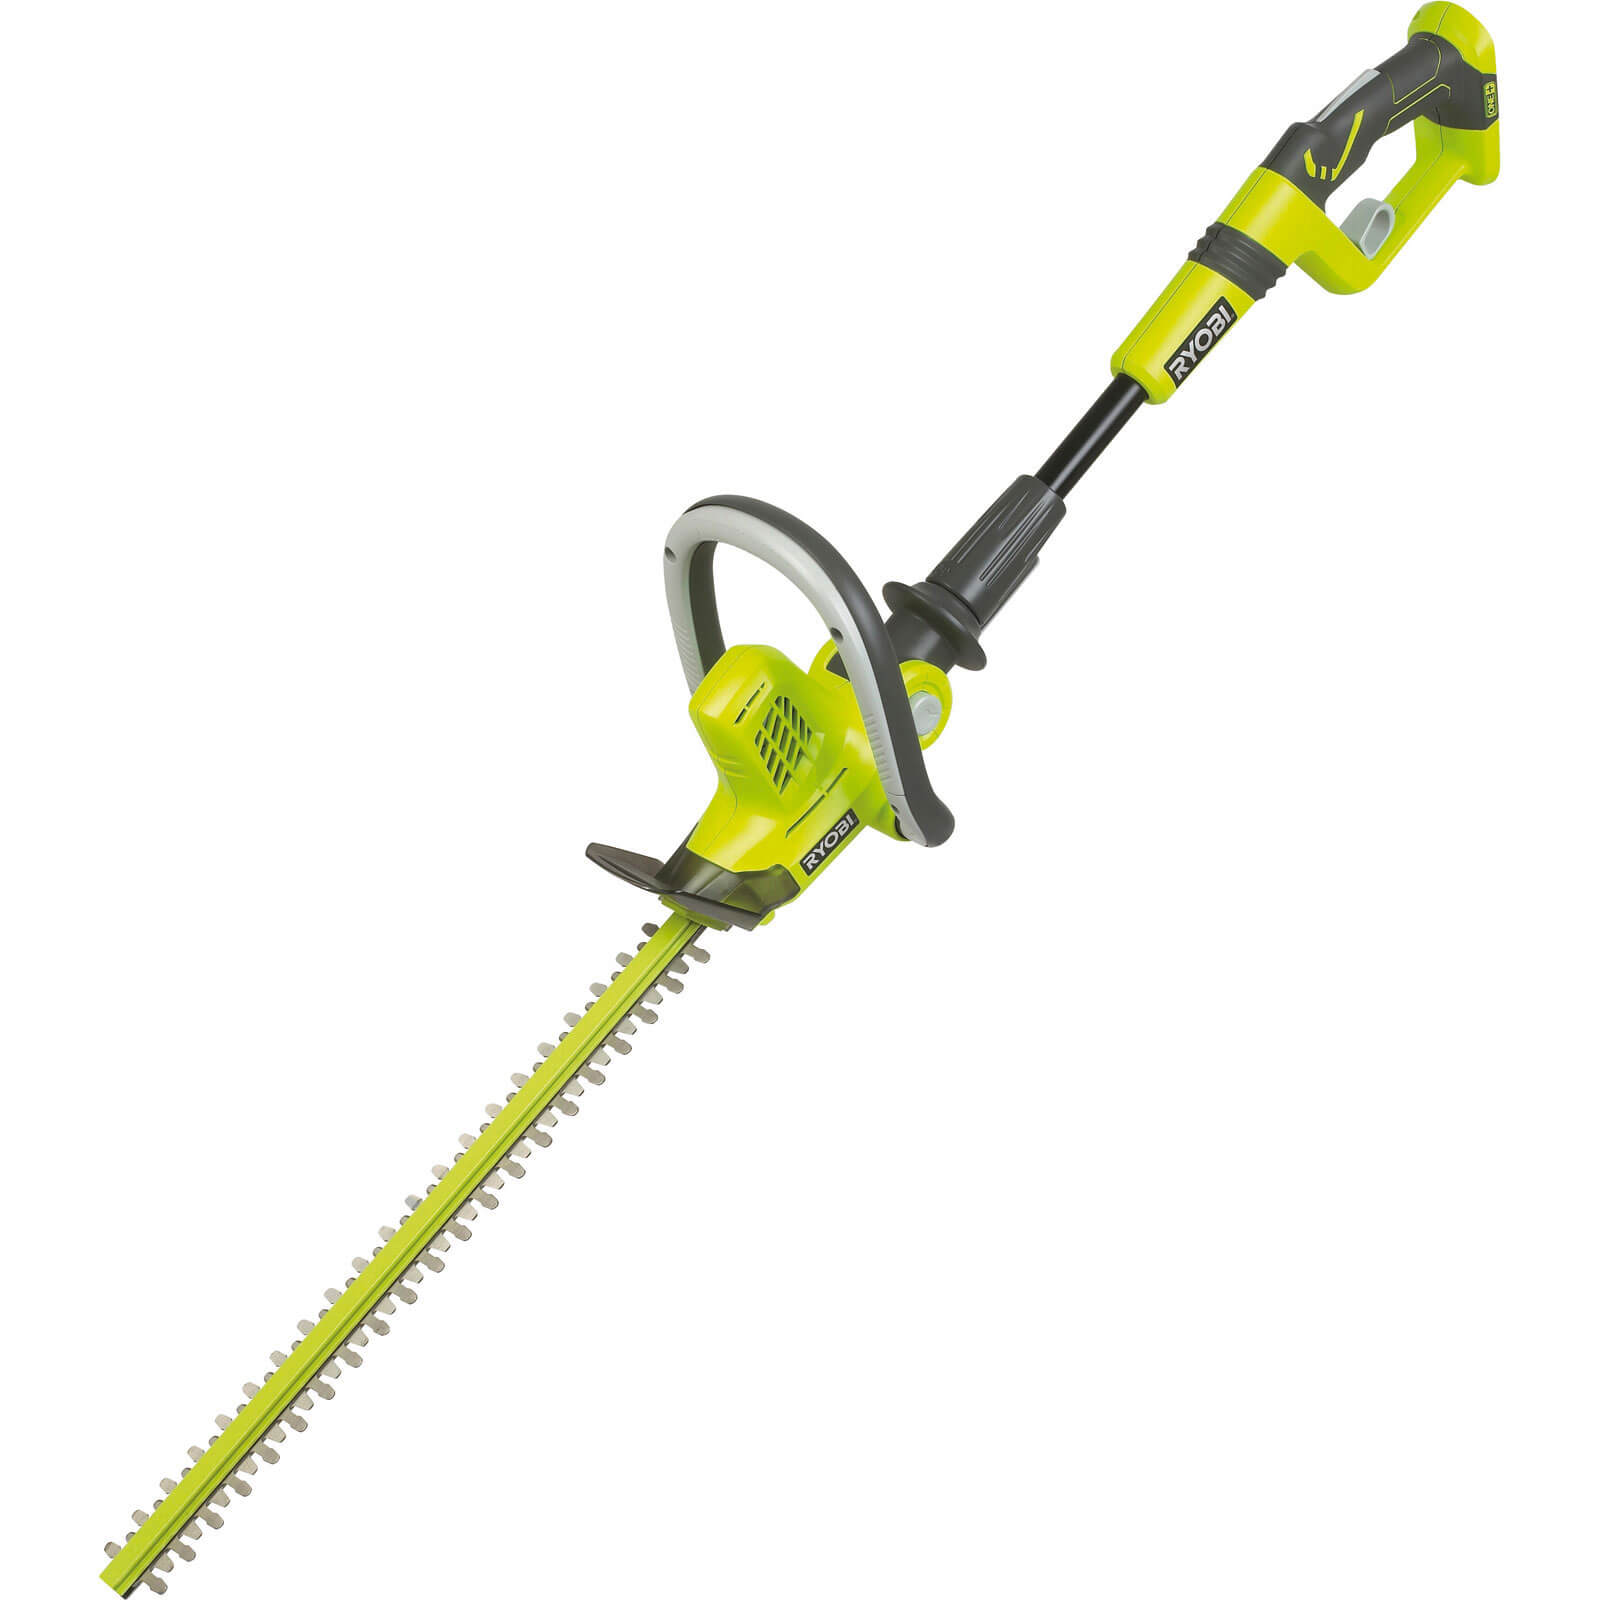 Ryobi OHT1850X ONE+ 18v Cordless Long Reach Hedge Trimmer with 500mm Blade without Battery or Charger (Requires ONE+ Battery & Charger)